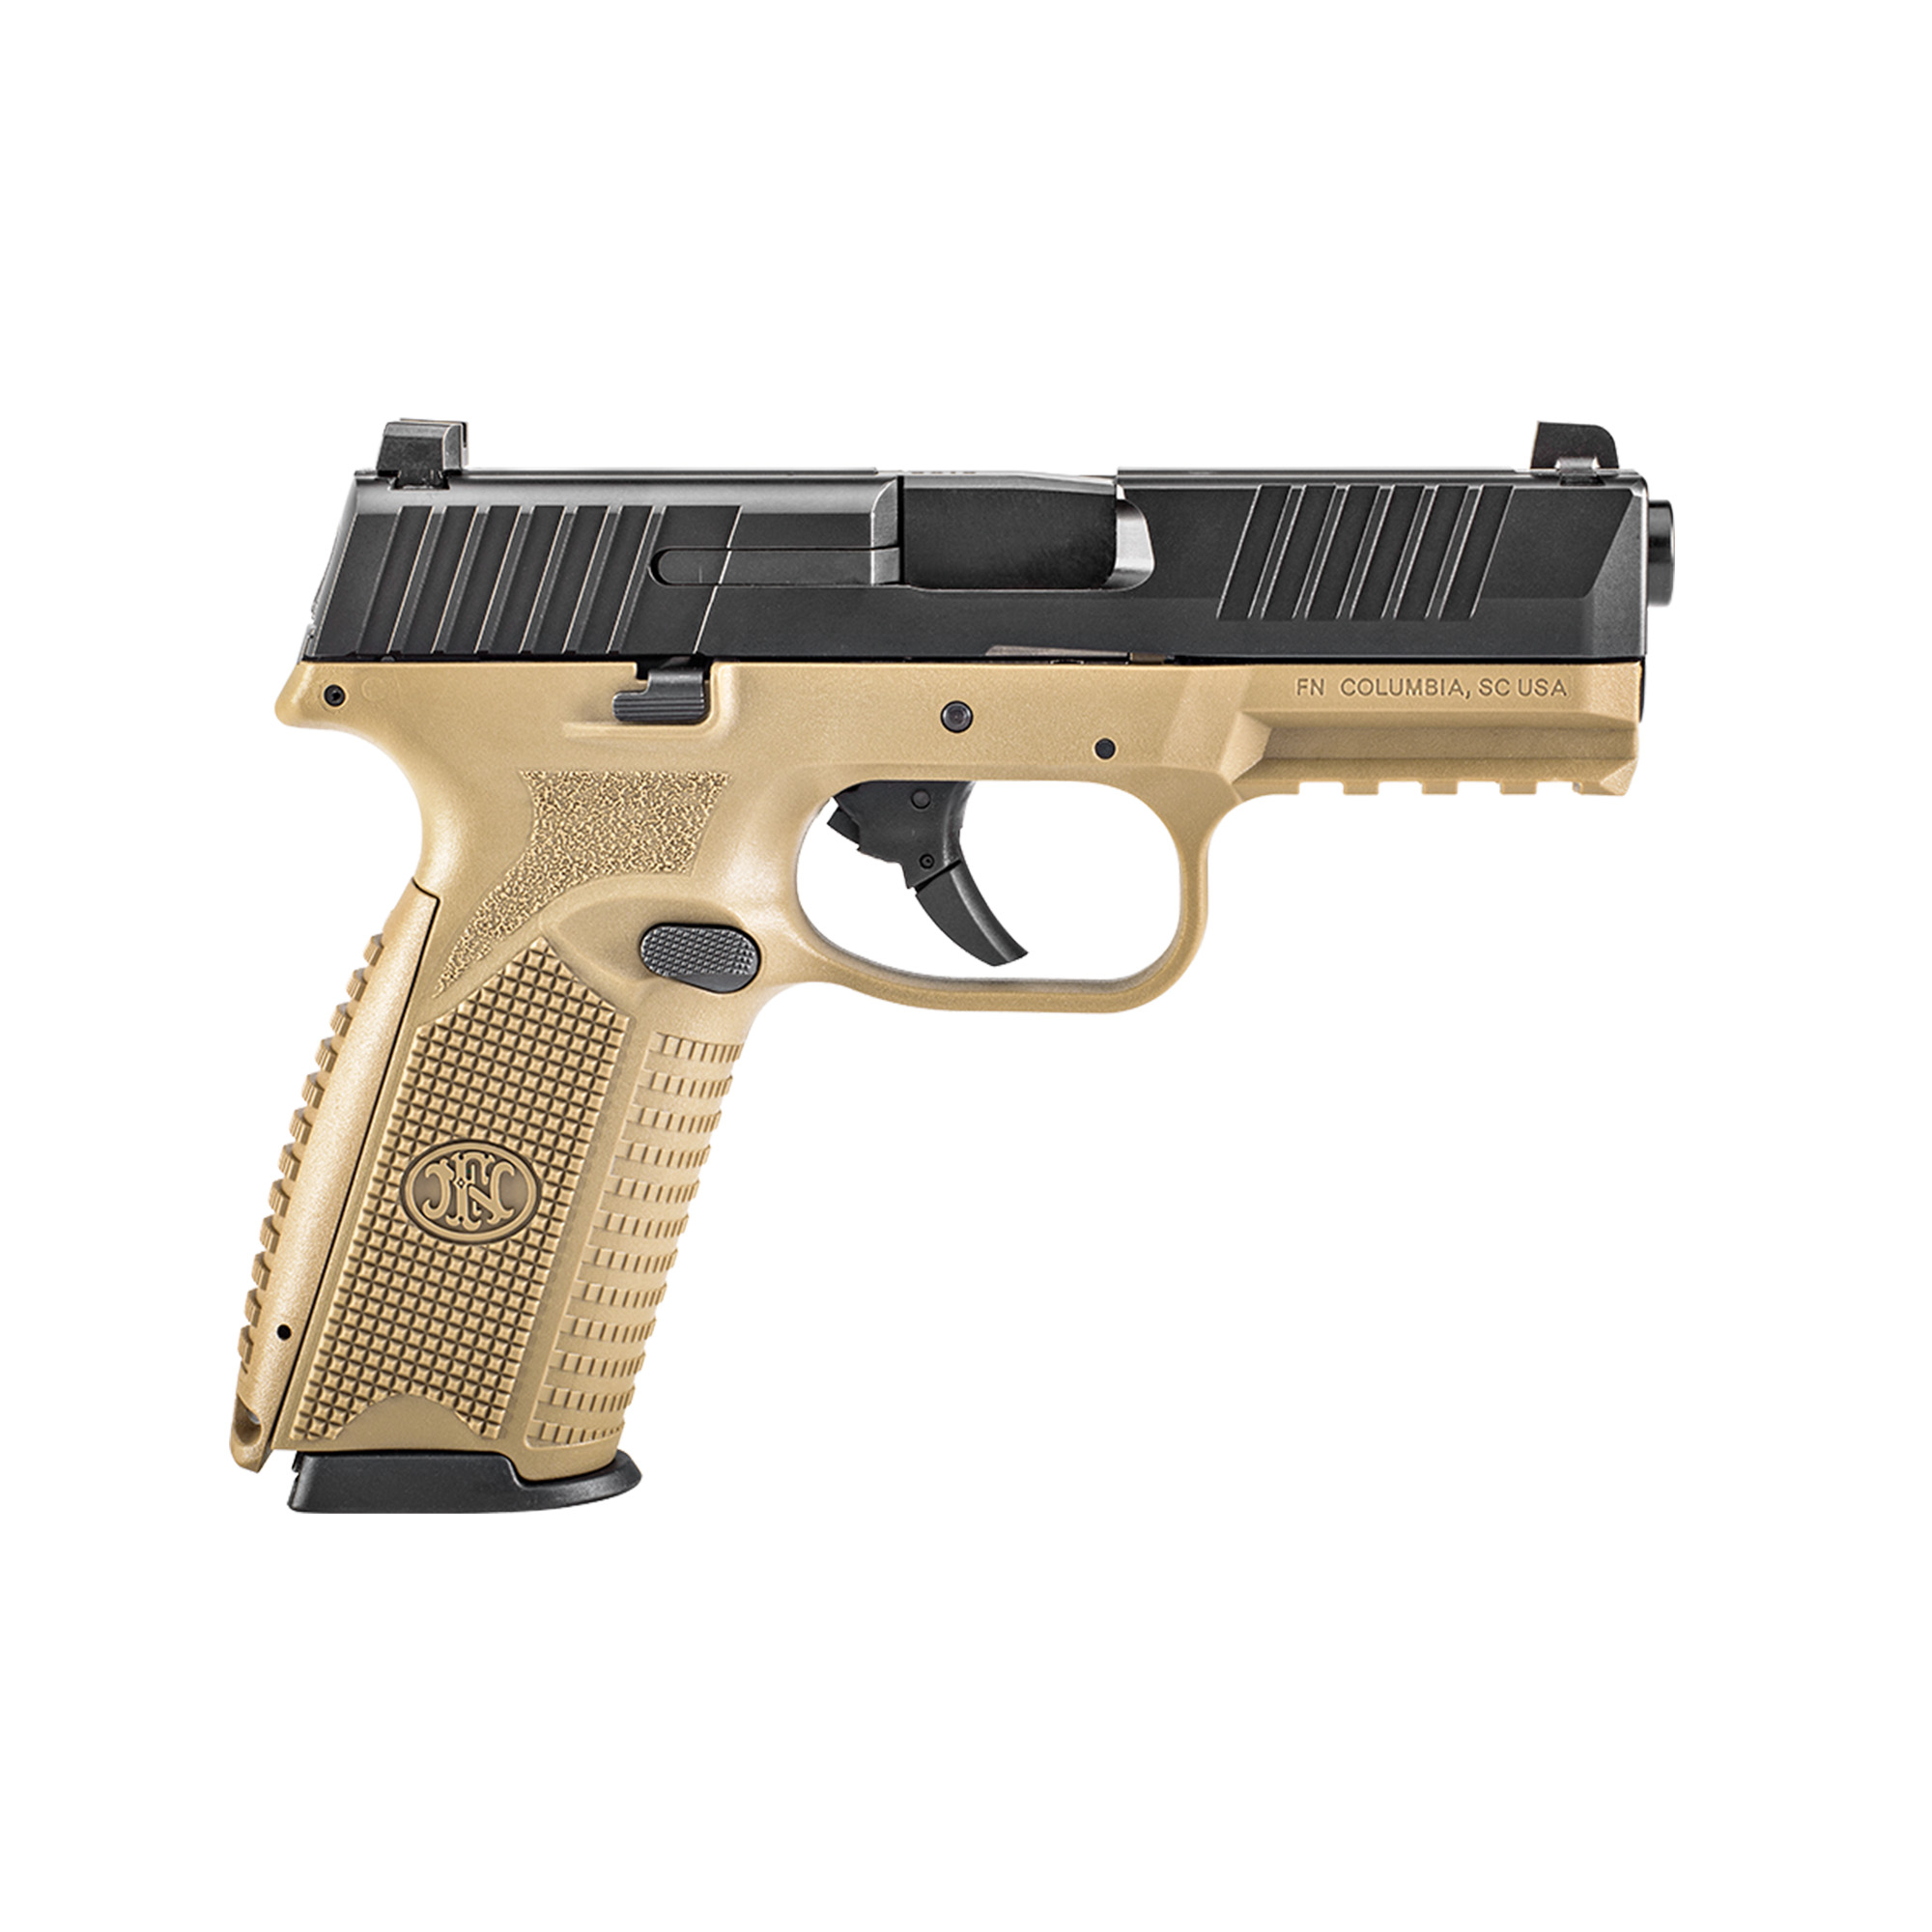 """The FN 509(R) is built on the proven architecture of the FNS(TM) Compact. FN made changes internally and externally to meet the rigorous performance standards of the MHS requirements and further developed the platform into the FN 509(R). Over the course of development"""" the platform has been tested extensively for reliability"""" ammunition compatibility and durability - totaling more than one million rounds."""